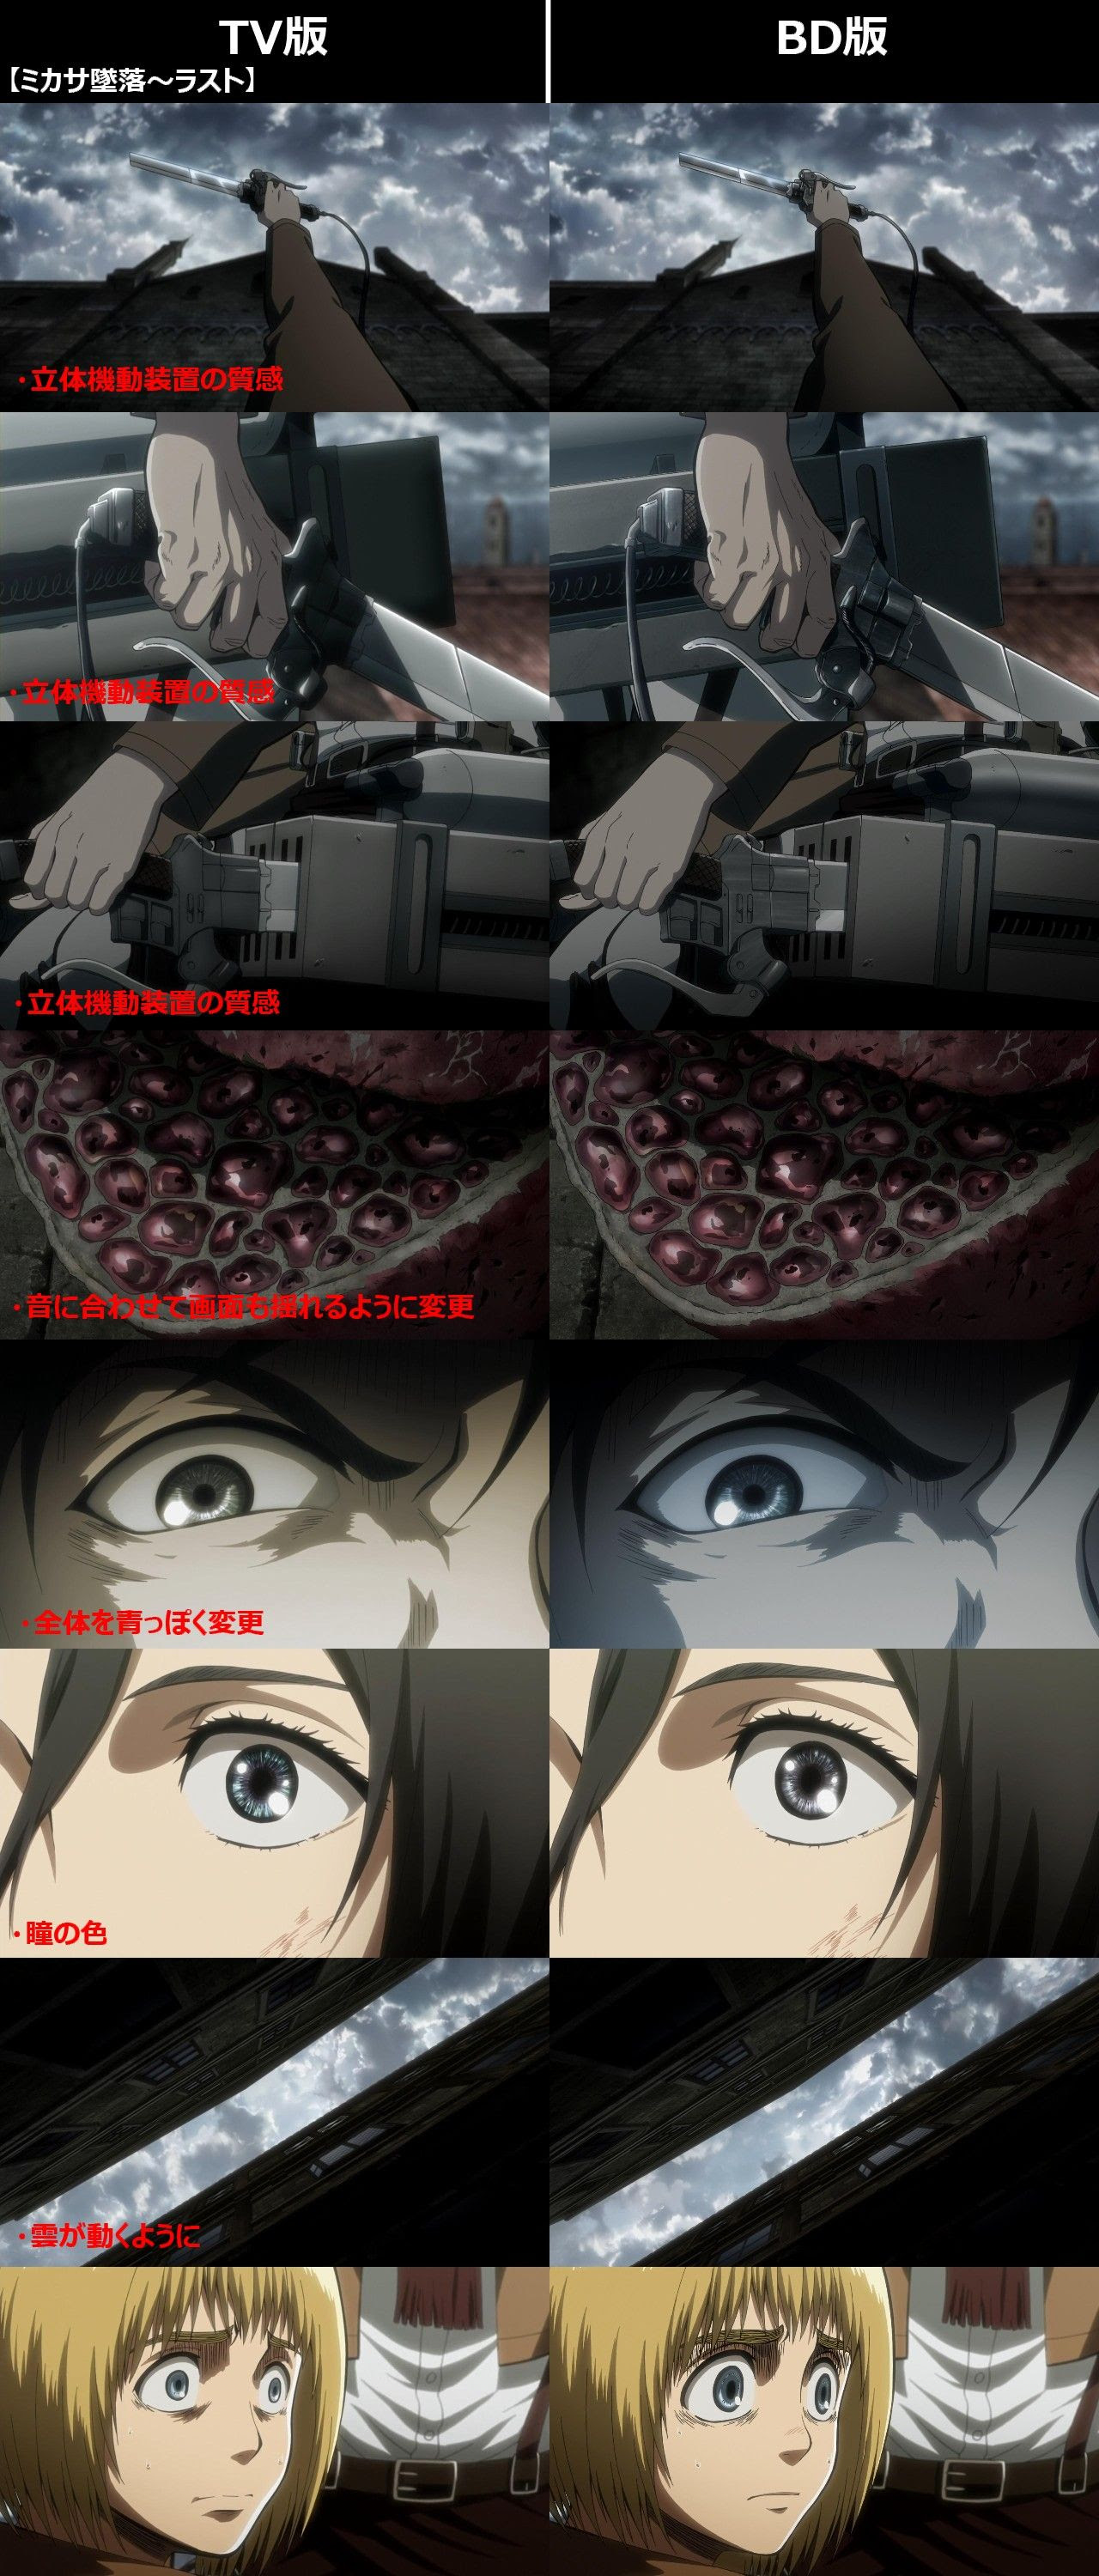 Images Of Attack On Titan Blu Ray Comparison